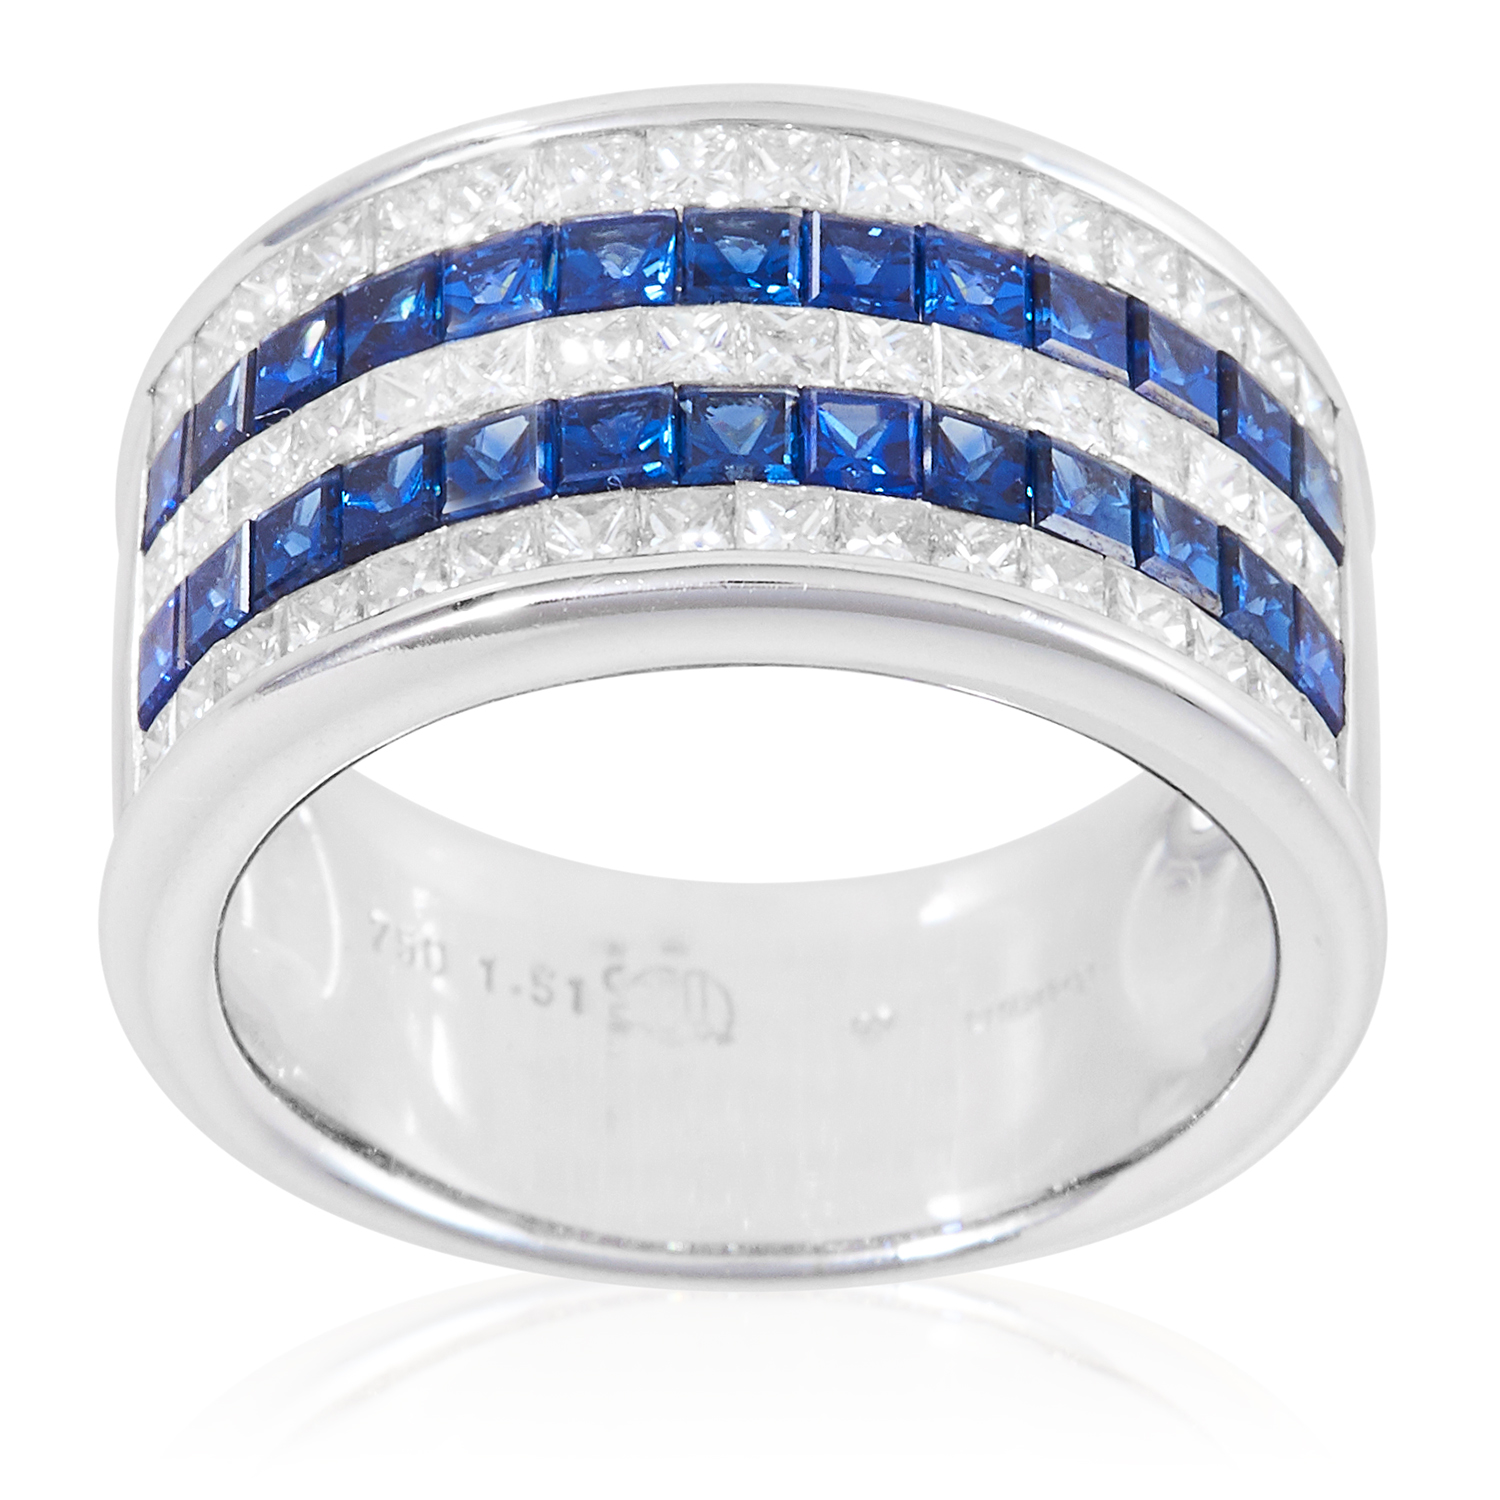 A SAPPHIRE AND DIAMOND HALF ETERNITY RING in 18ct white gold, comprising five rows of alternating